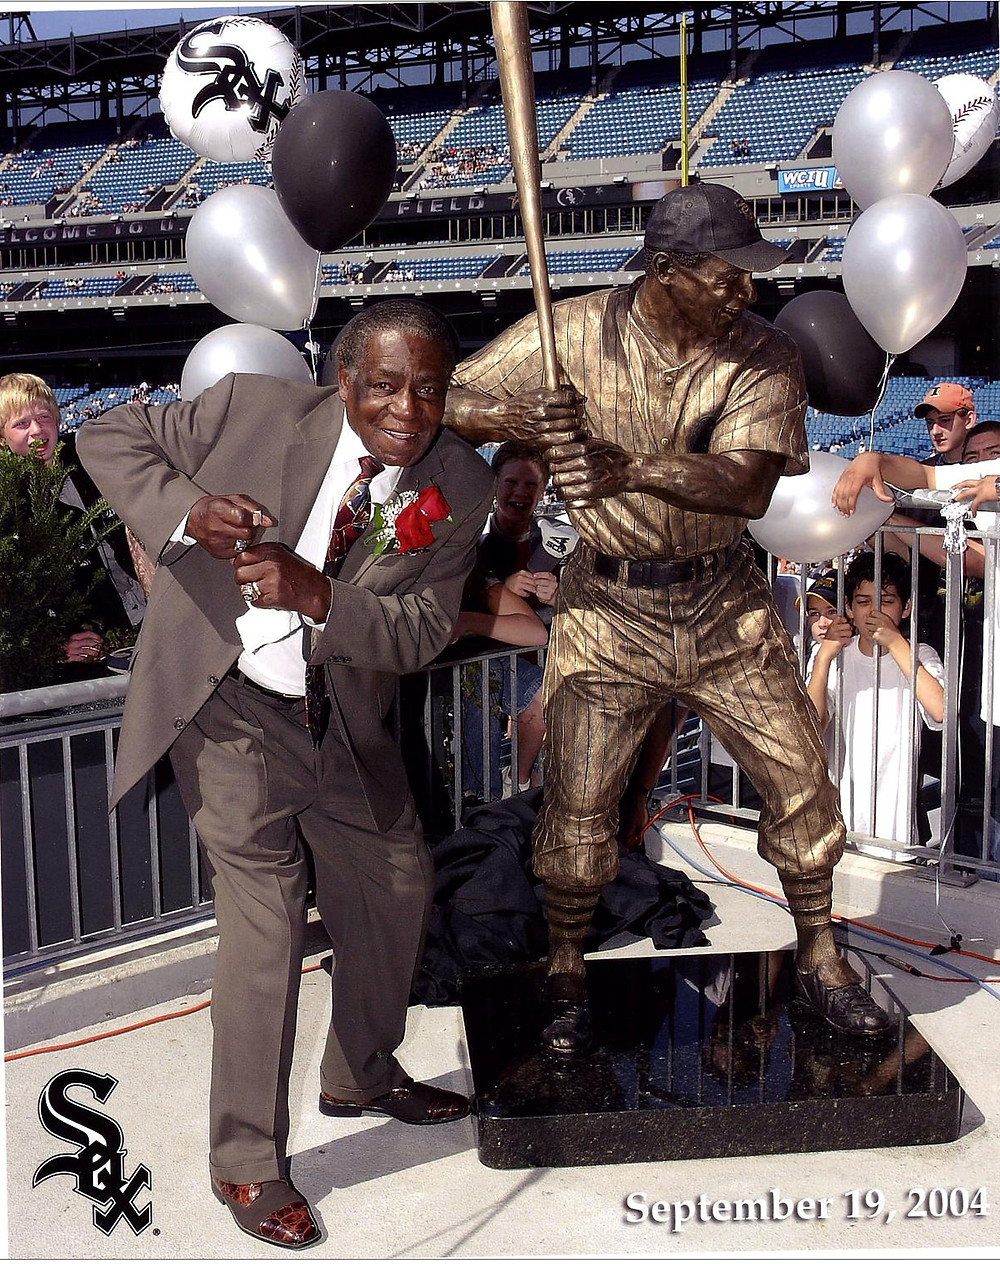 Minnie Minoso and his statue with the Chicago White Sox